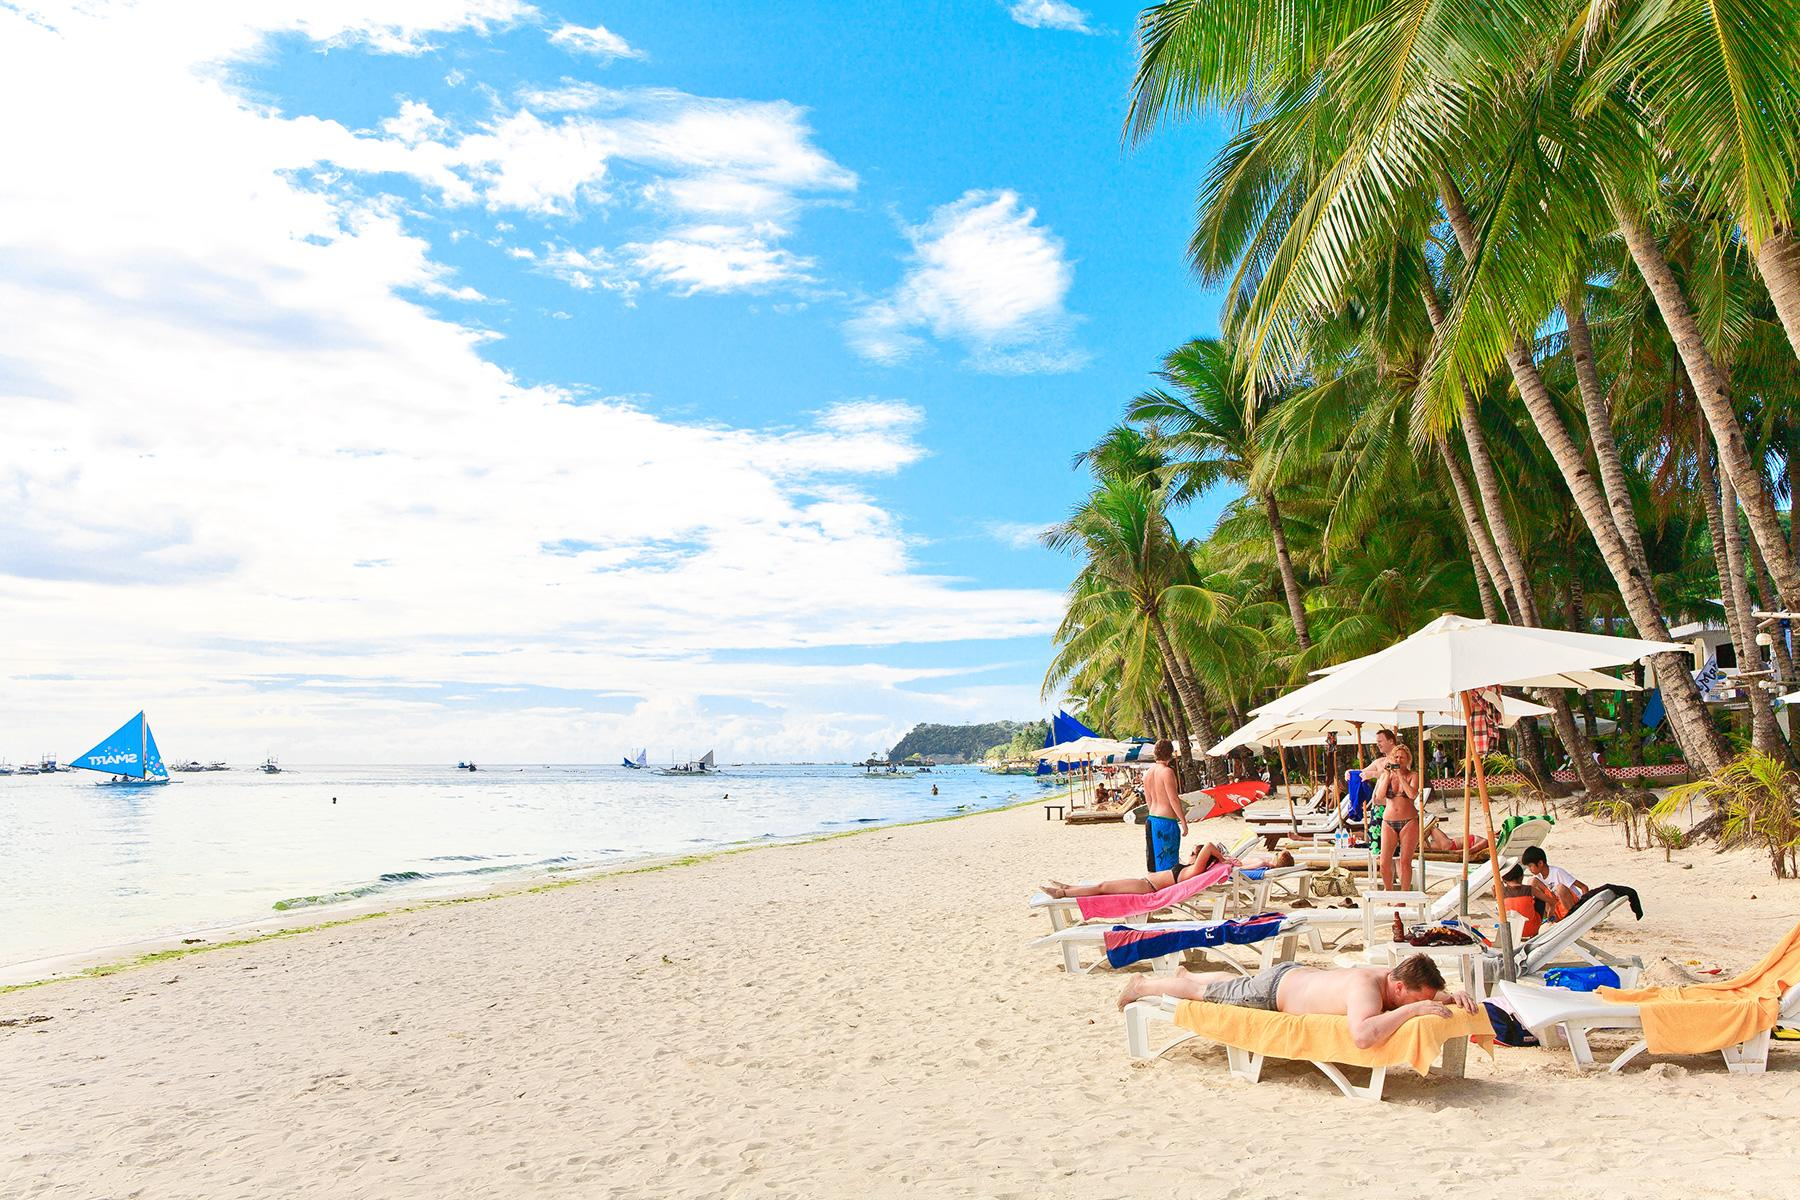 Top 15 Beach Destinations For Winter Escapes